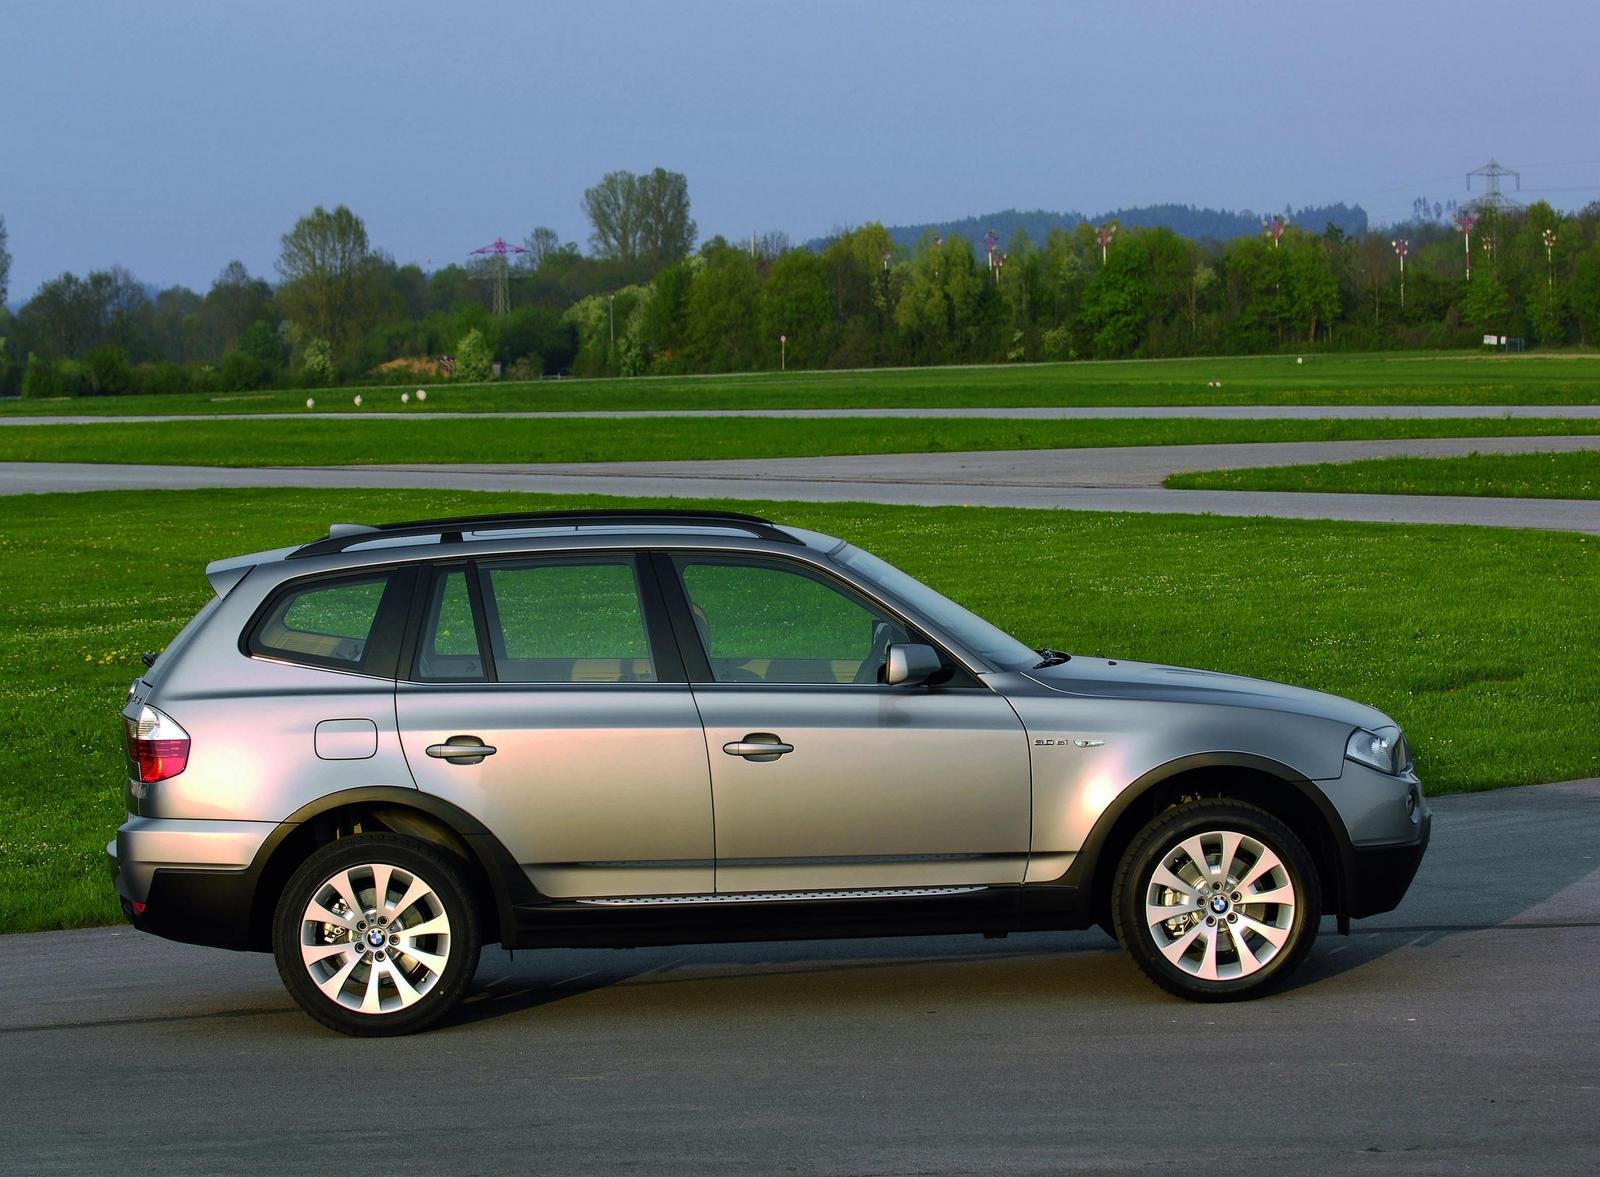 2007 bmw x3 picture 83739 car review top speed. Black Bedroom Furniture Sets. Home Design Ideas